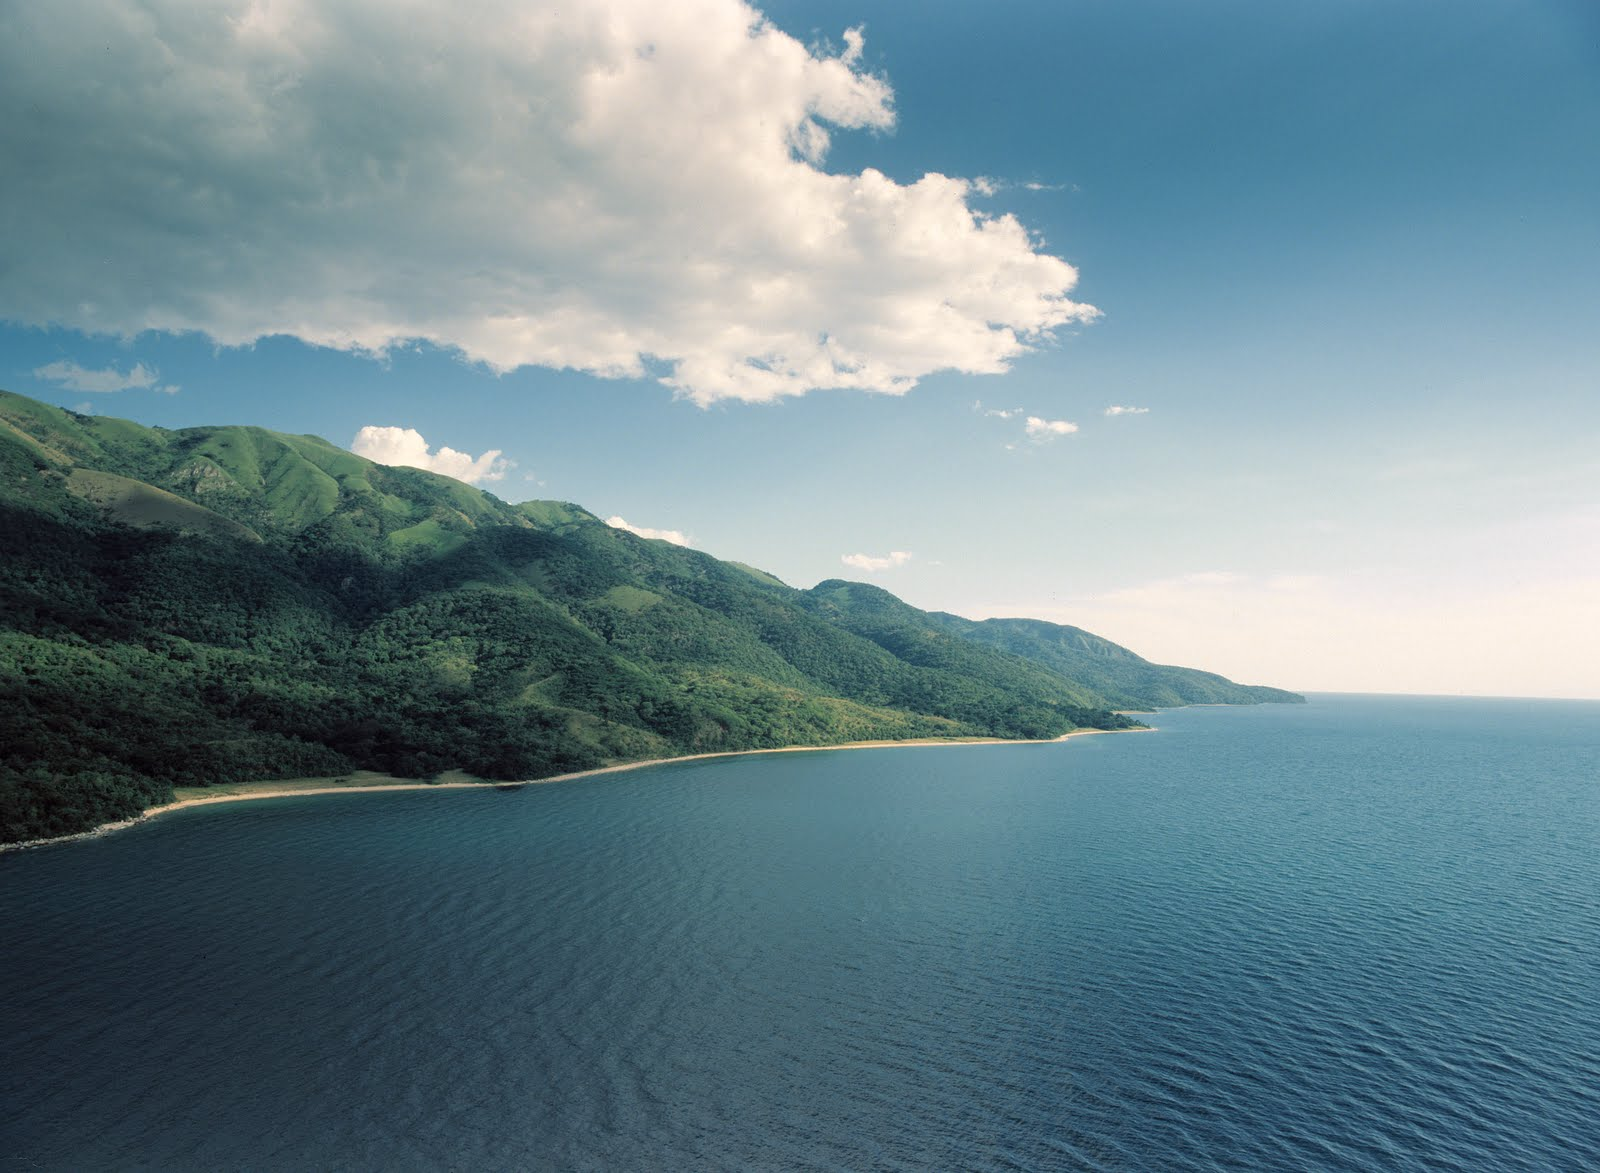 Do you want know more about Lake Tanganyika, click here!